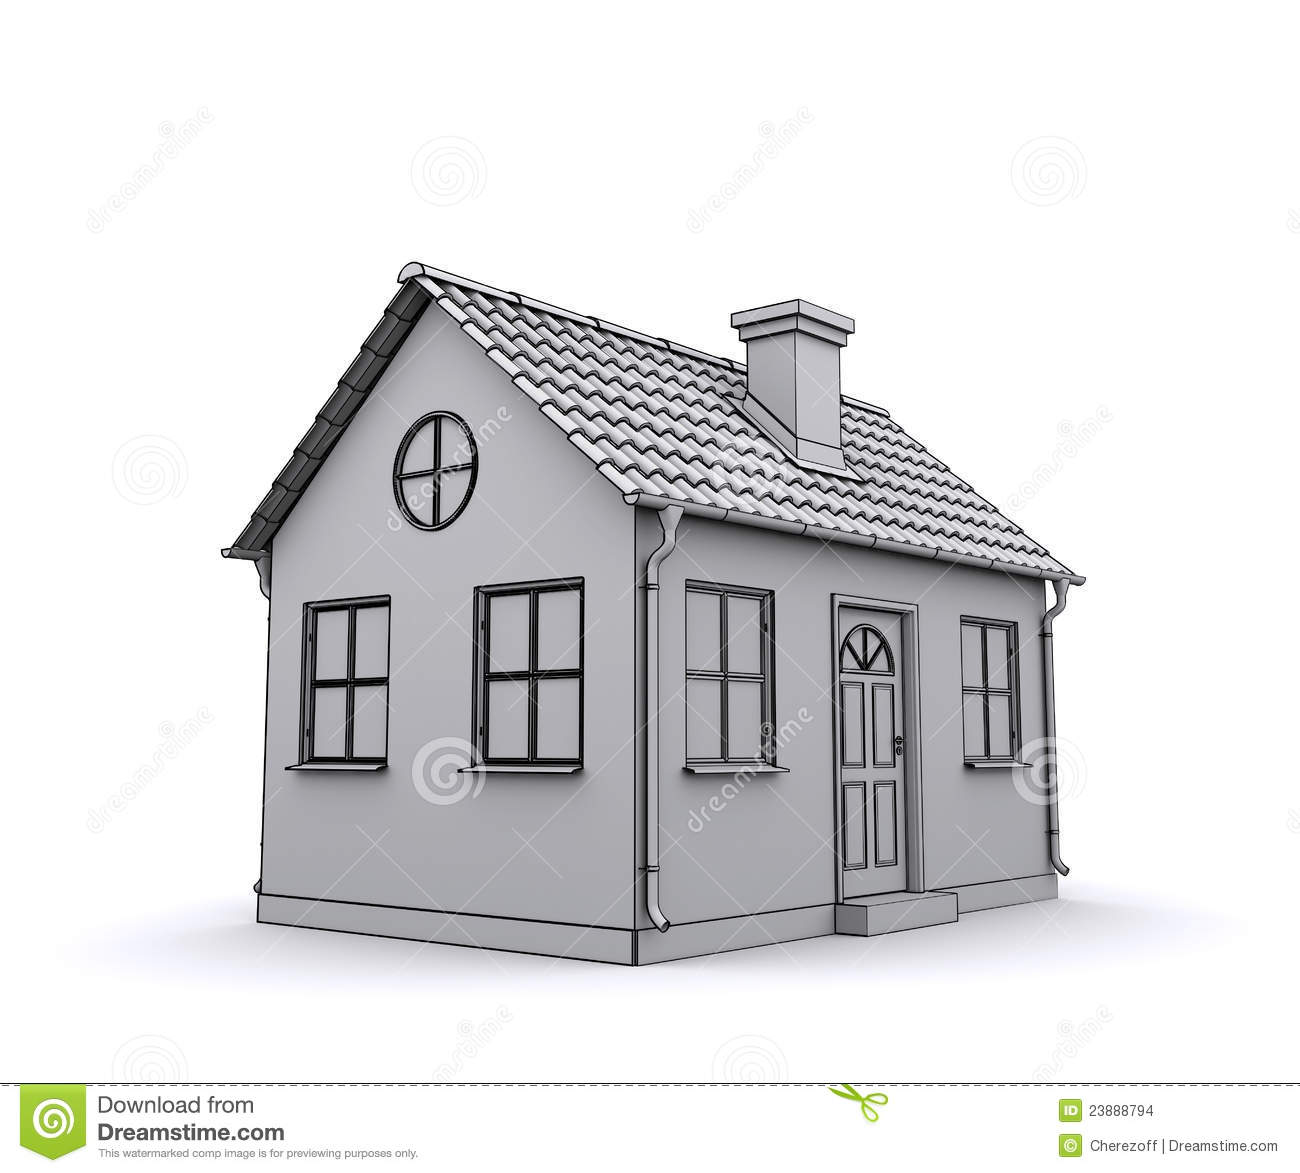 Frame house 3d model of a white stock images image 23888794 - Comment fonctionne une maison domotique ...